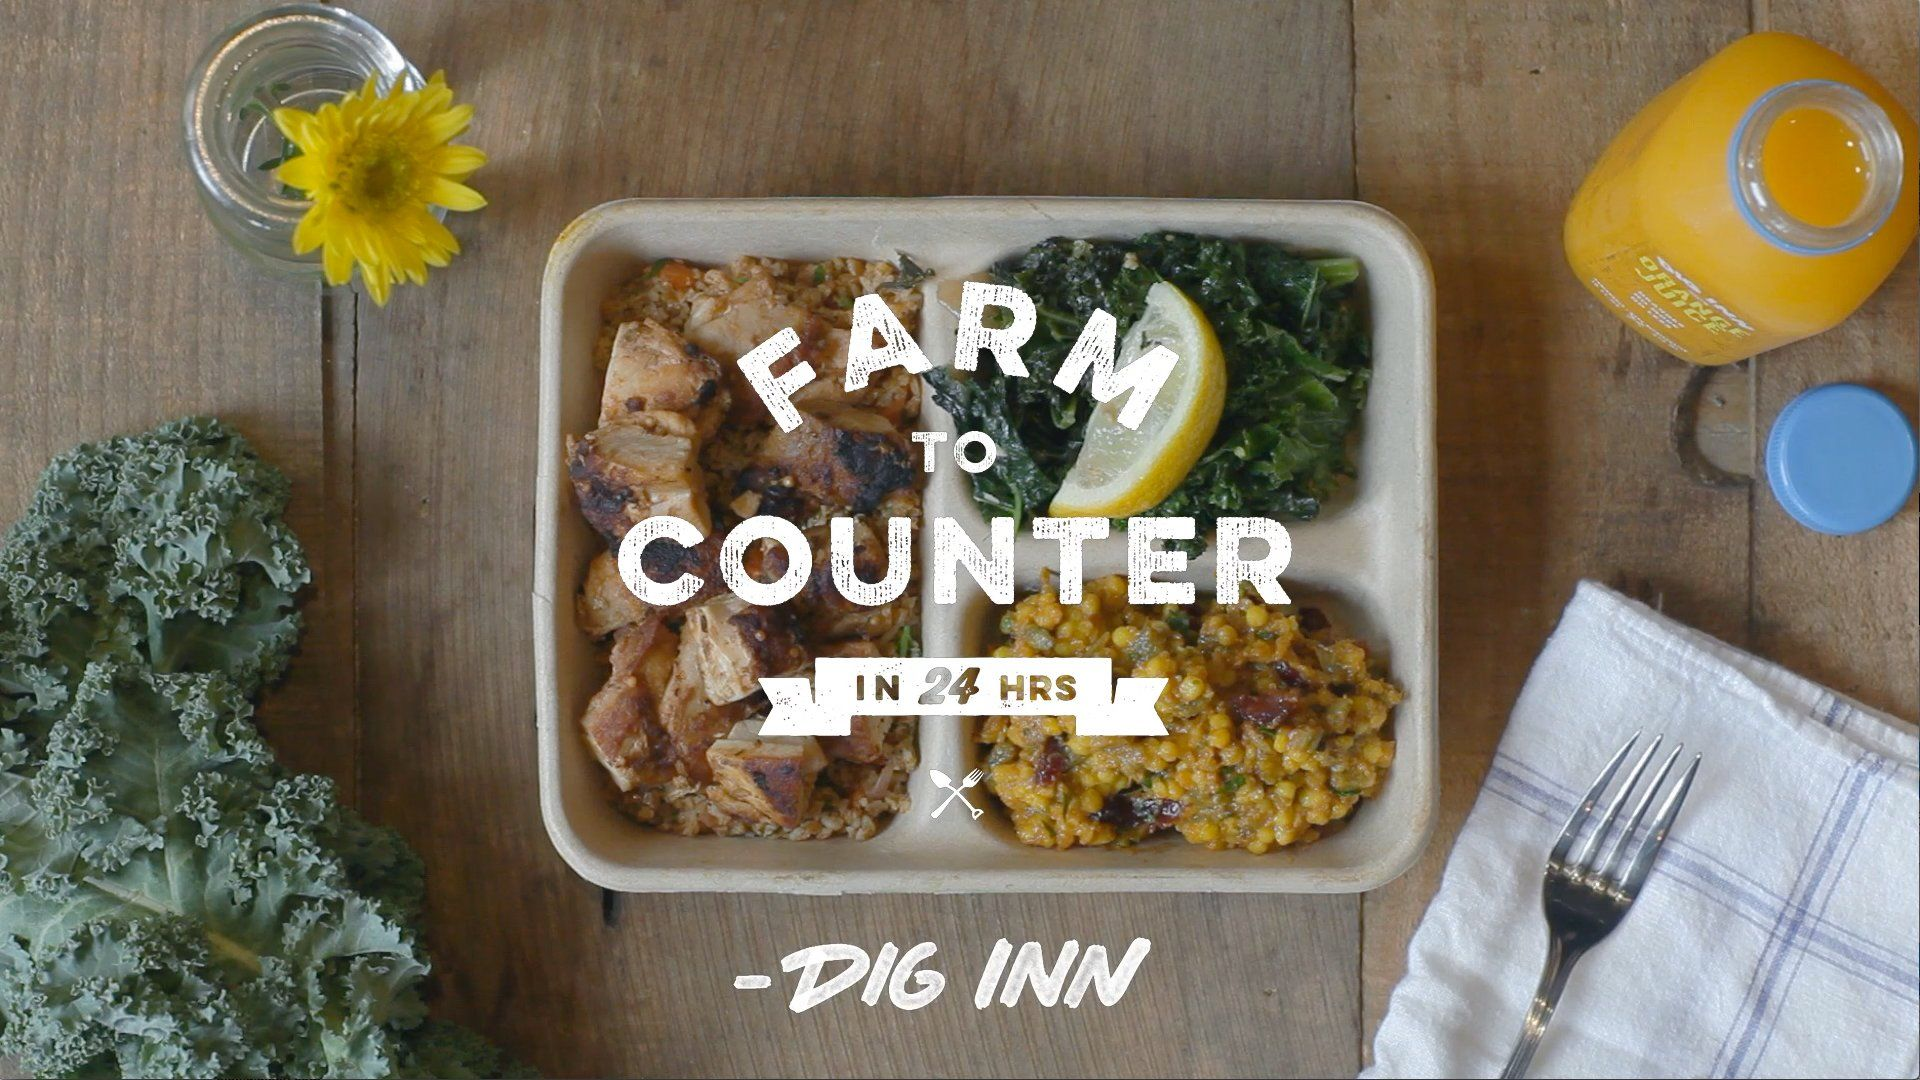 Farm to counter in 24 hours eat farm food